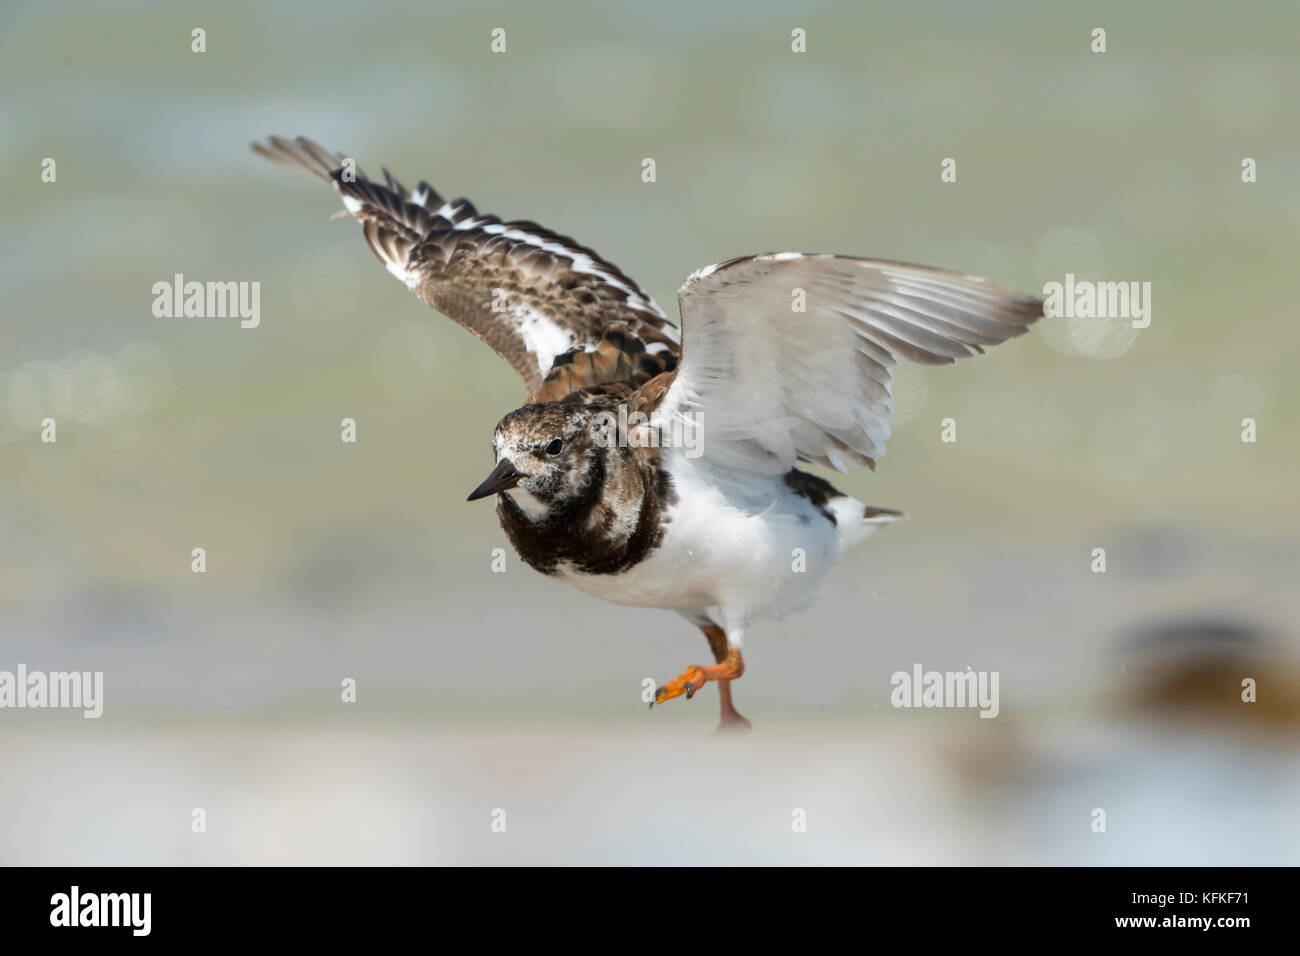 Ruddy turnstone (Arenaria interpres) with extended wings, at take-off, Helgoland, Schleswig-Holstein, Germany - Stock Image